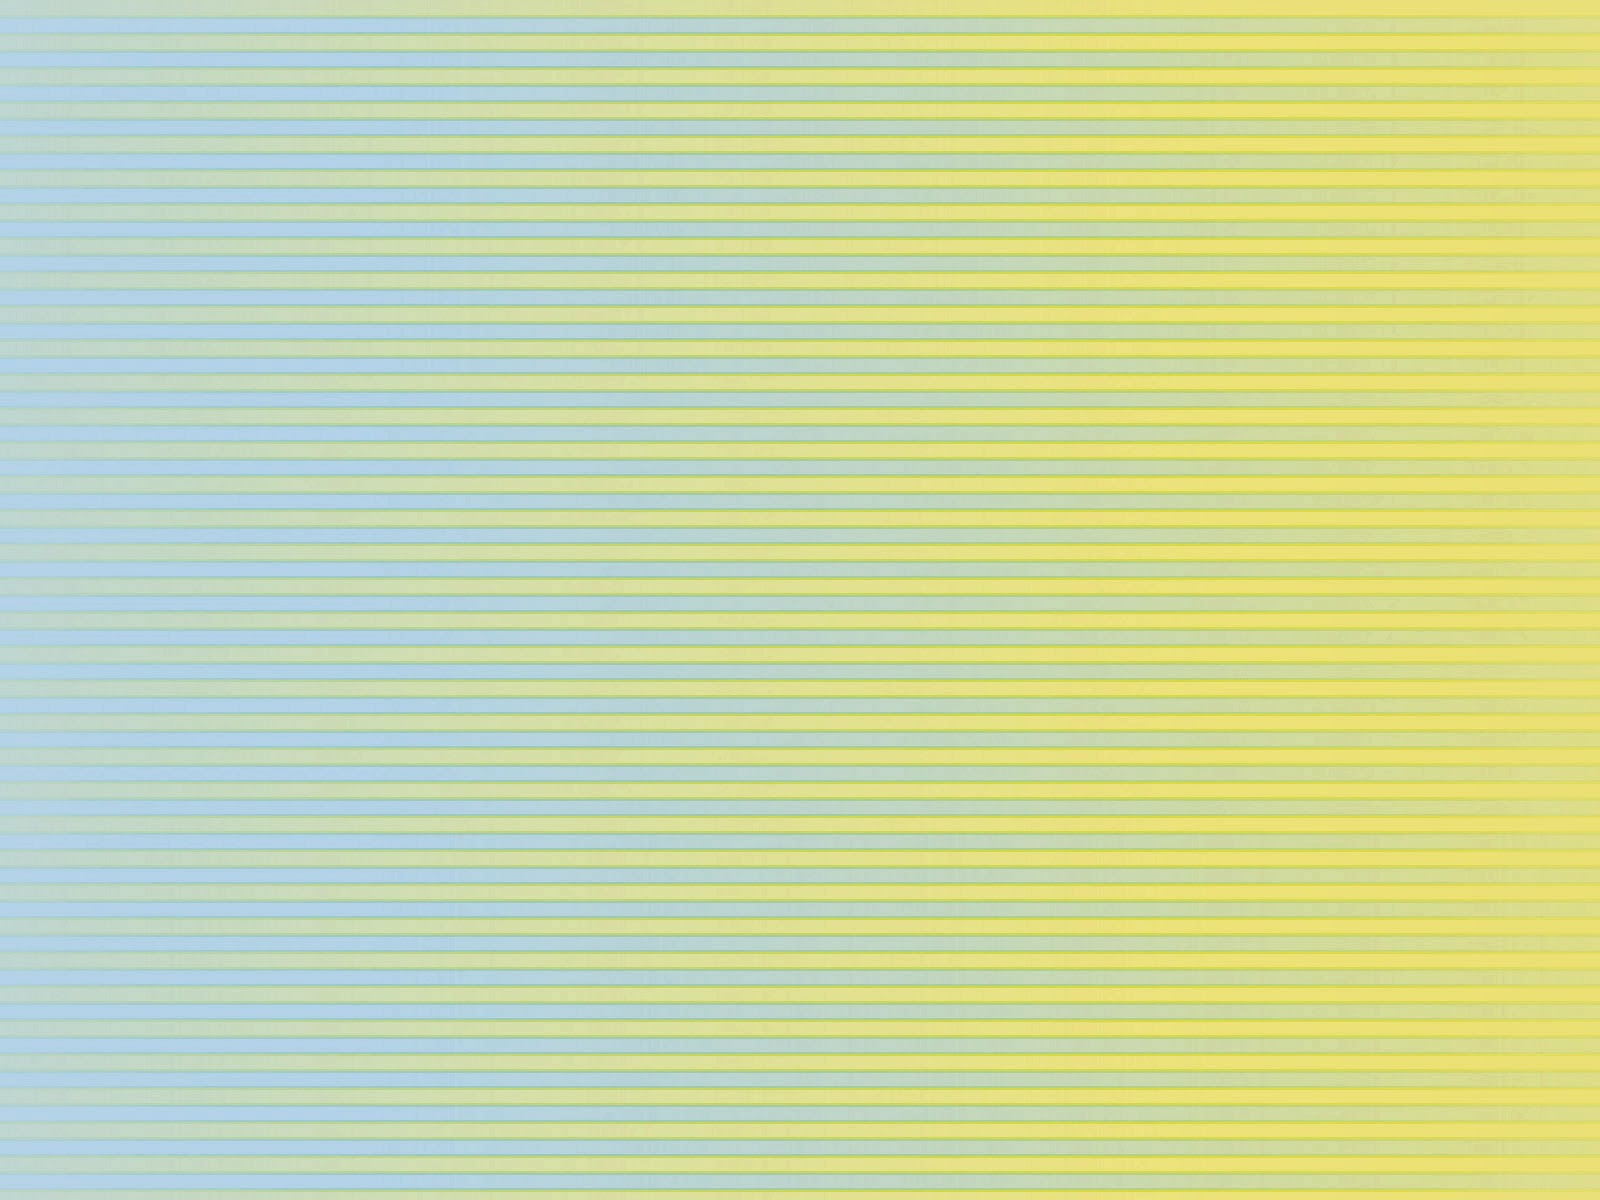 Blue And Yellow Striped Wallpaper: Sh Yn Design: Stripe Wallpaper : Blue Yellow Stripe